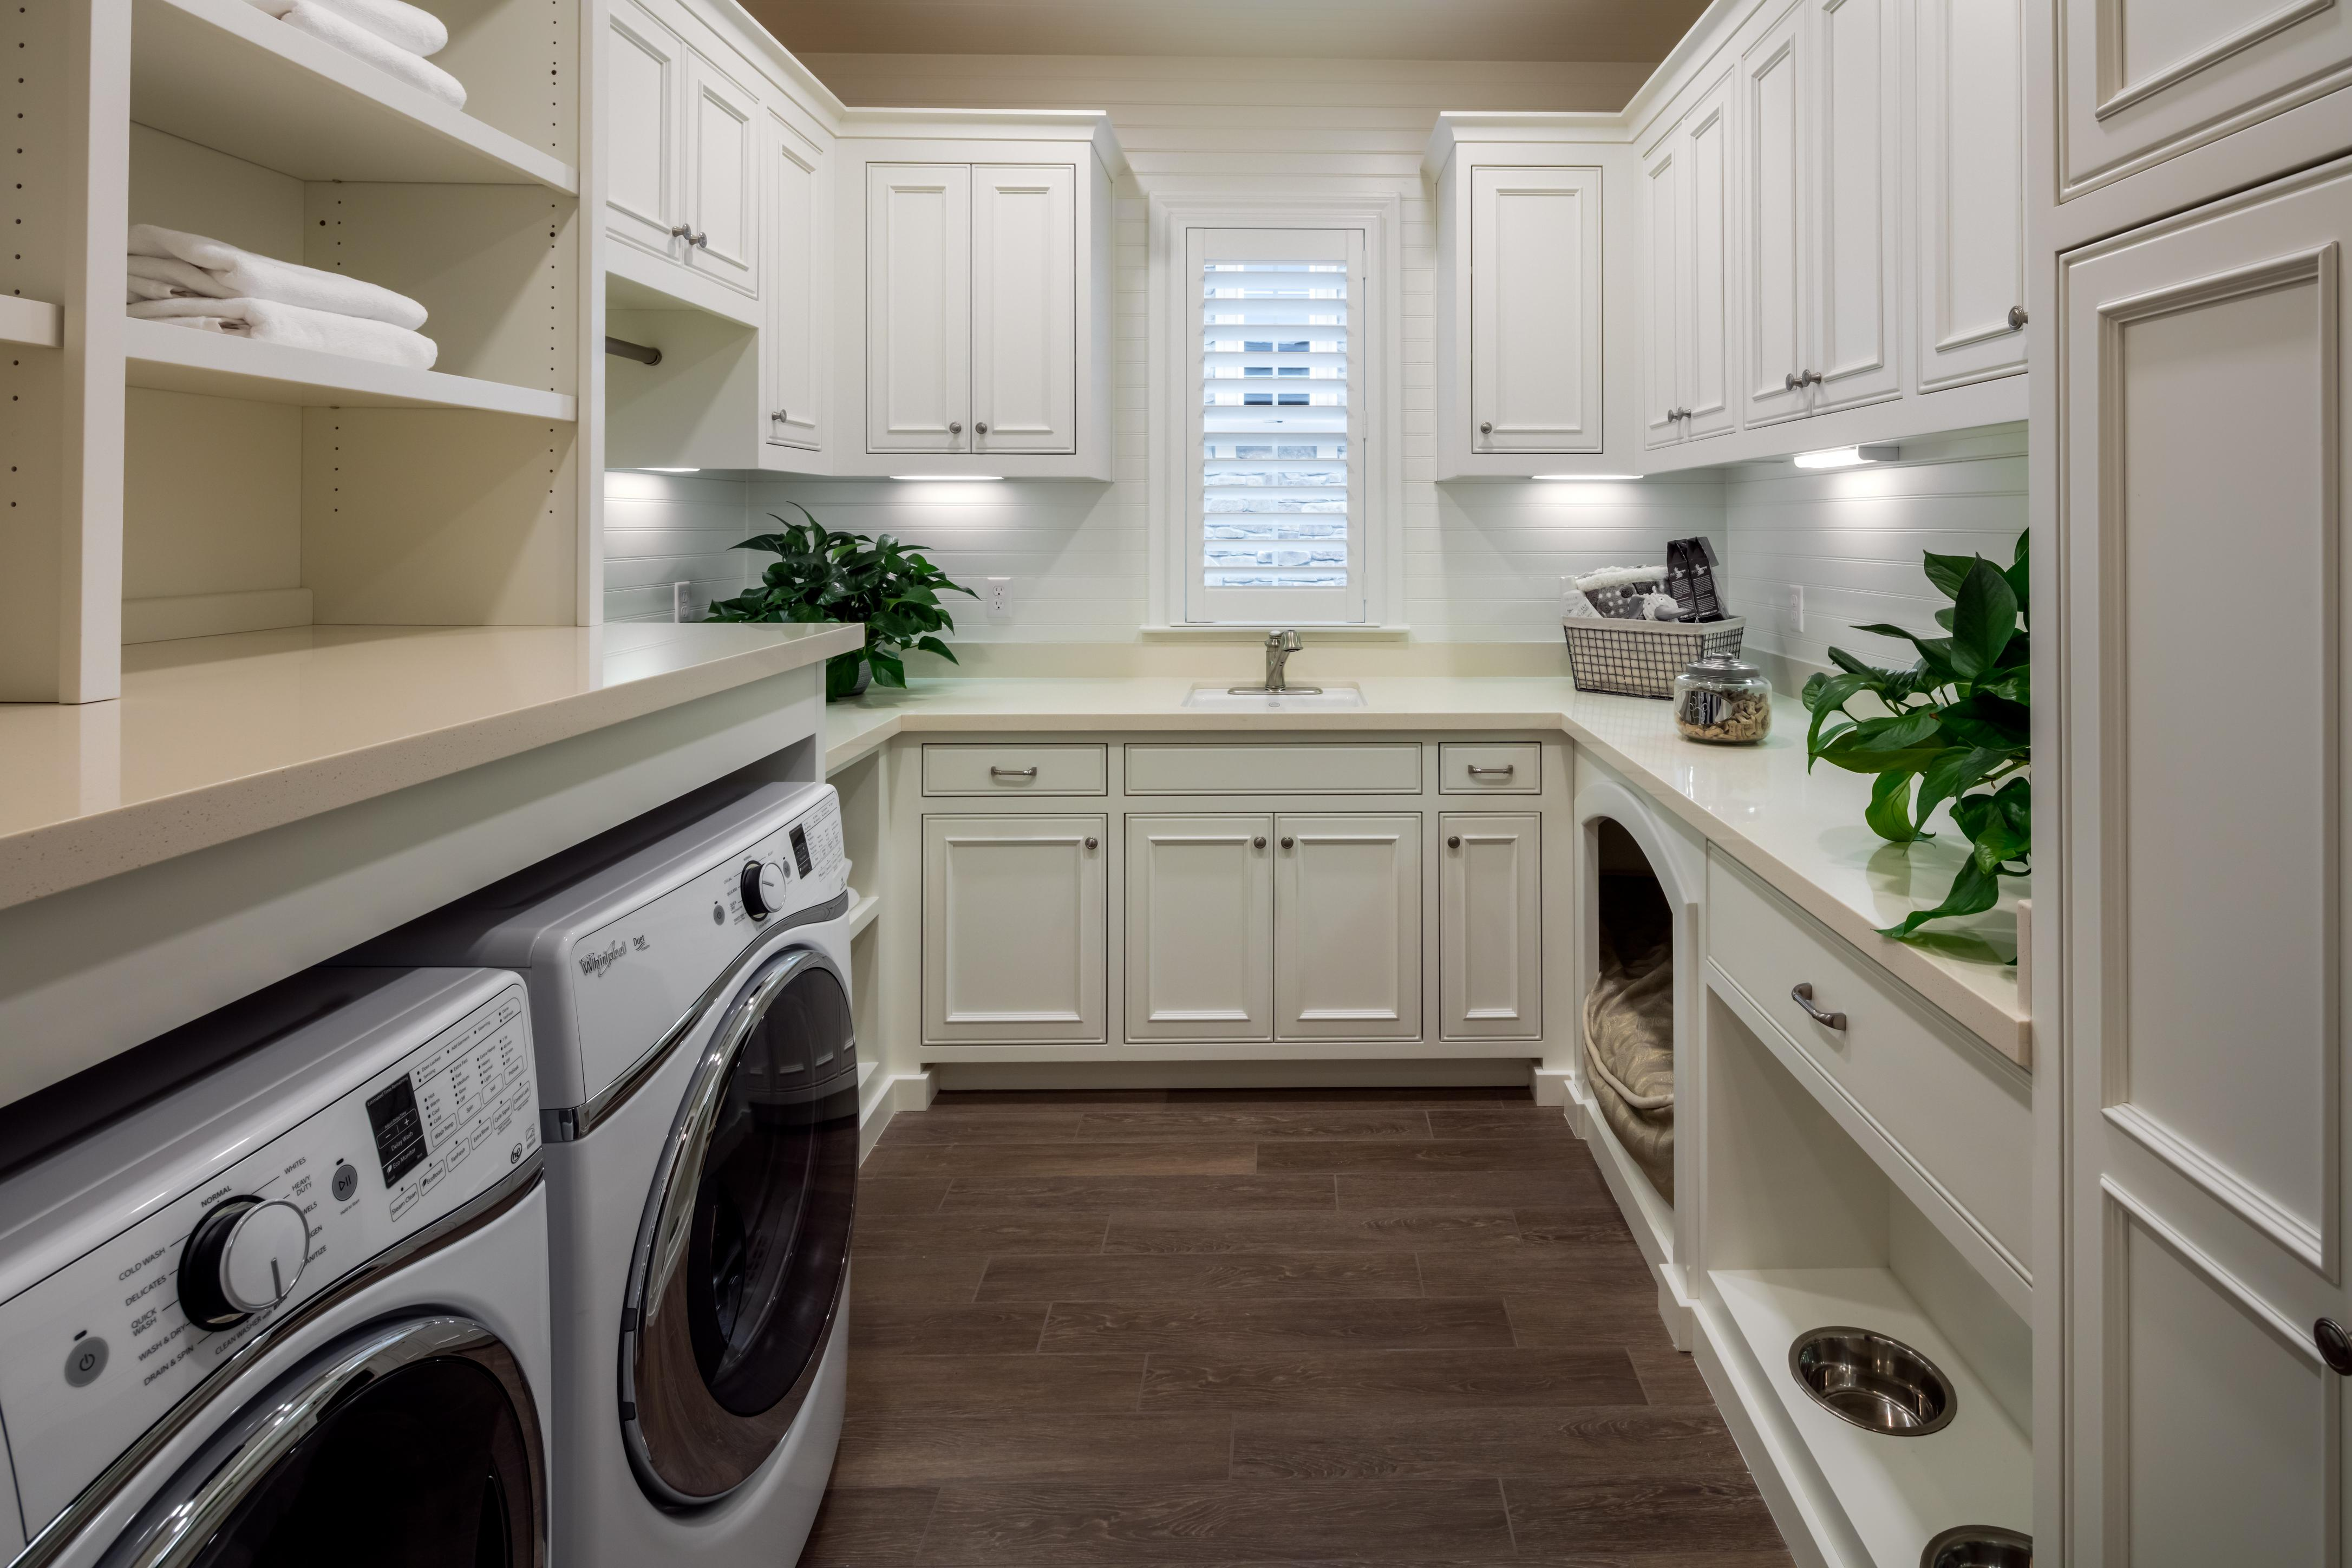 Laundry room with white cabinets and wood floors.